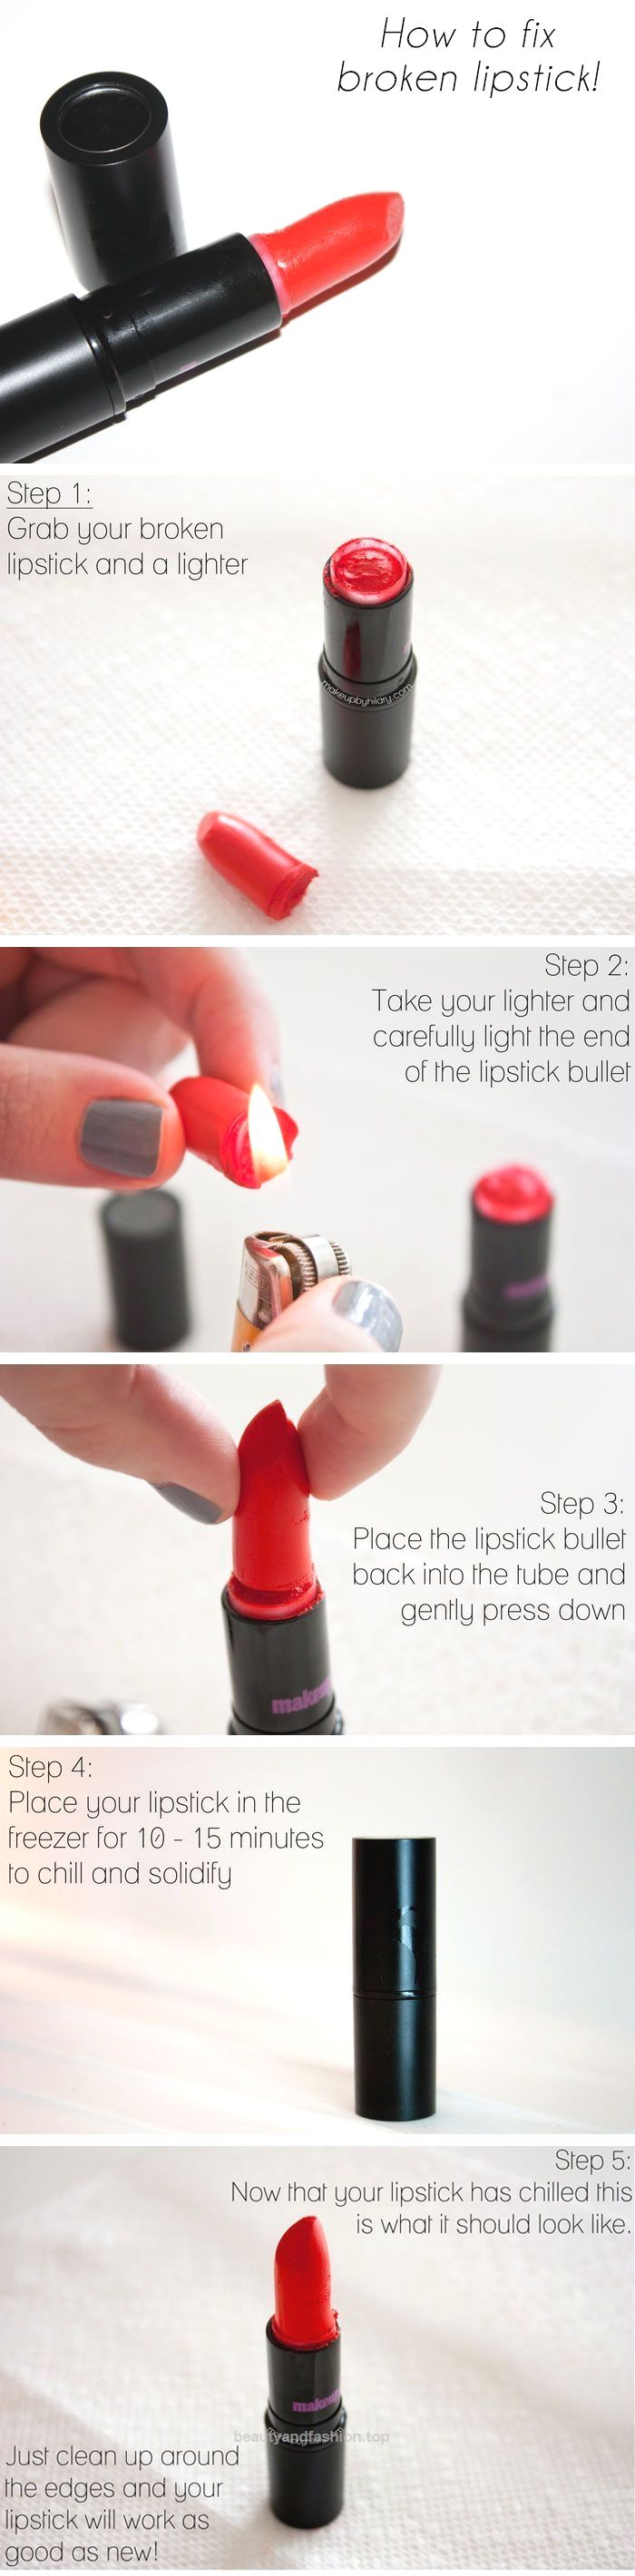 27 Awesome Life Hacks Every Girl Should Know!   http://www.beautyandfashion.top/2017/07/31/27-awesome-life-hacks-every-girl-should-know/